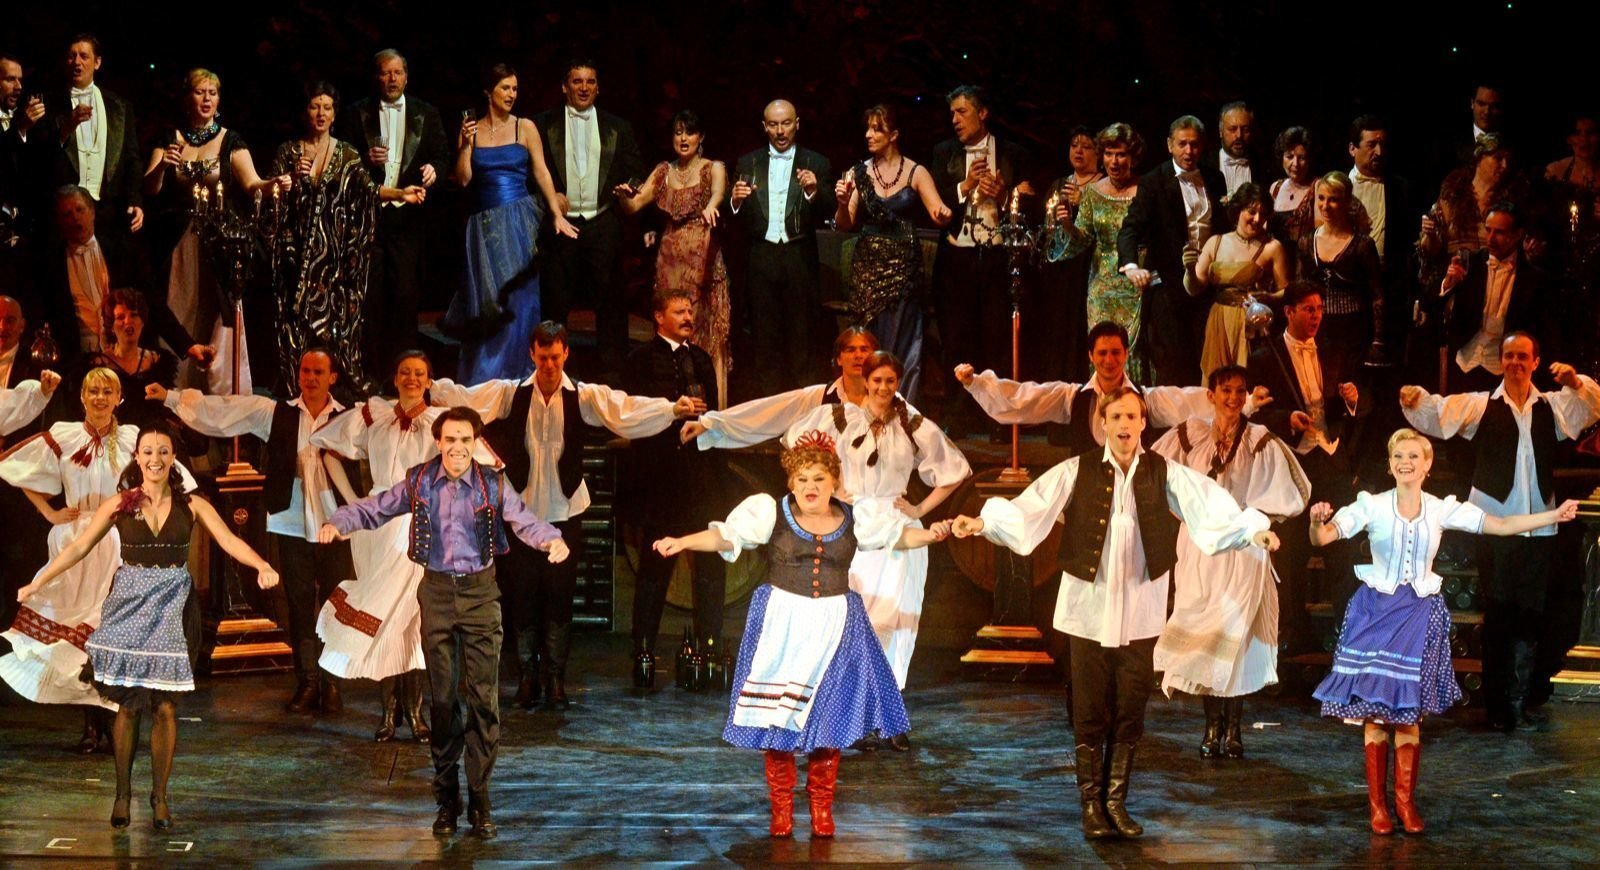 the day of the hungarian operetta daily news hungary